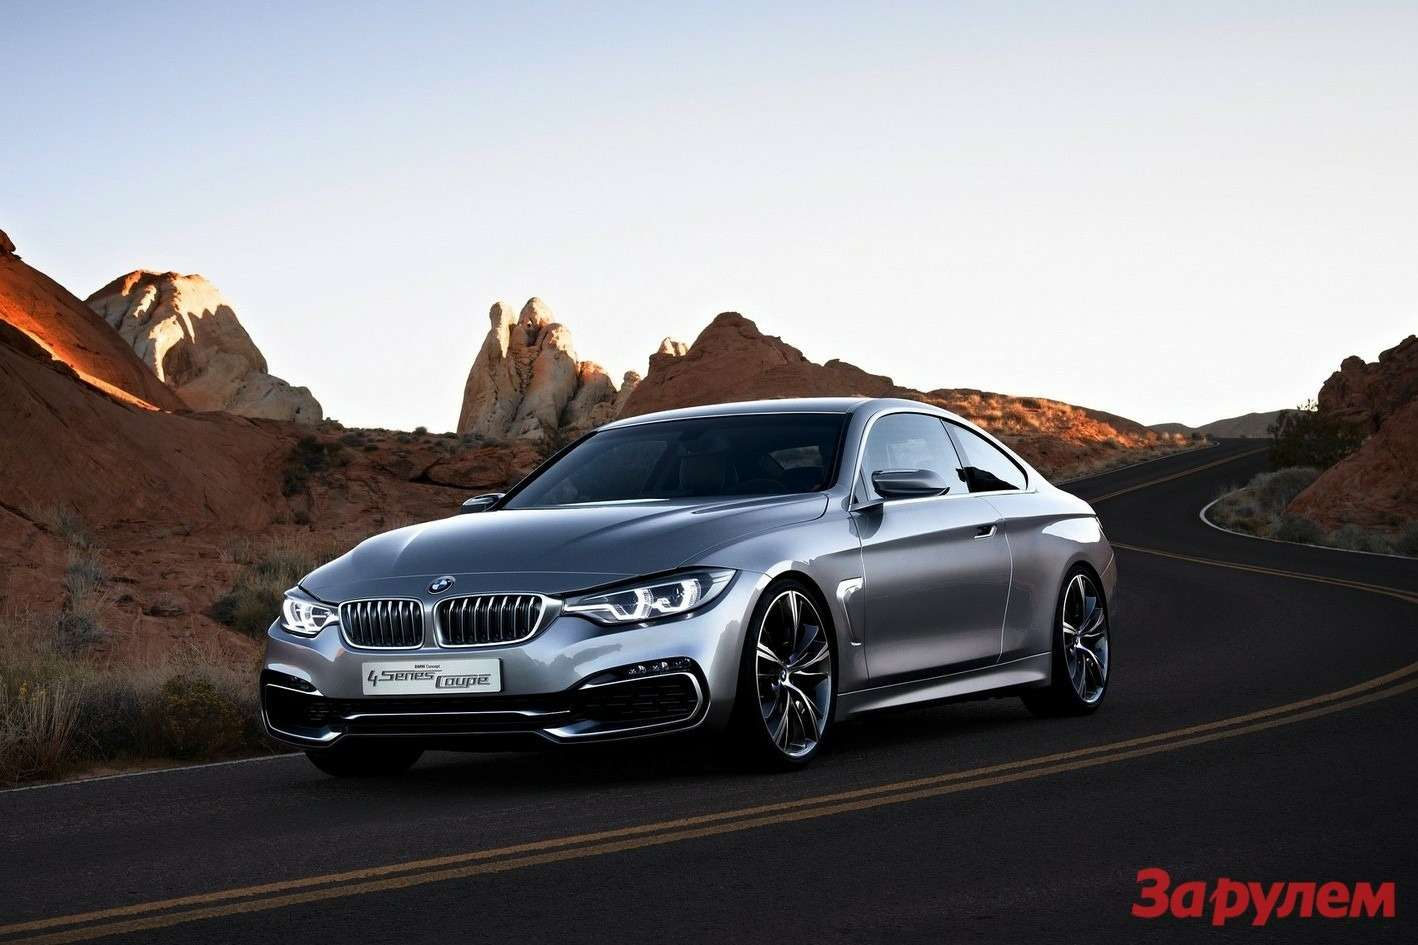 BMW-4-Series_Coupe_Concept_2013_1600x1200_wallpaper_02